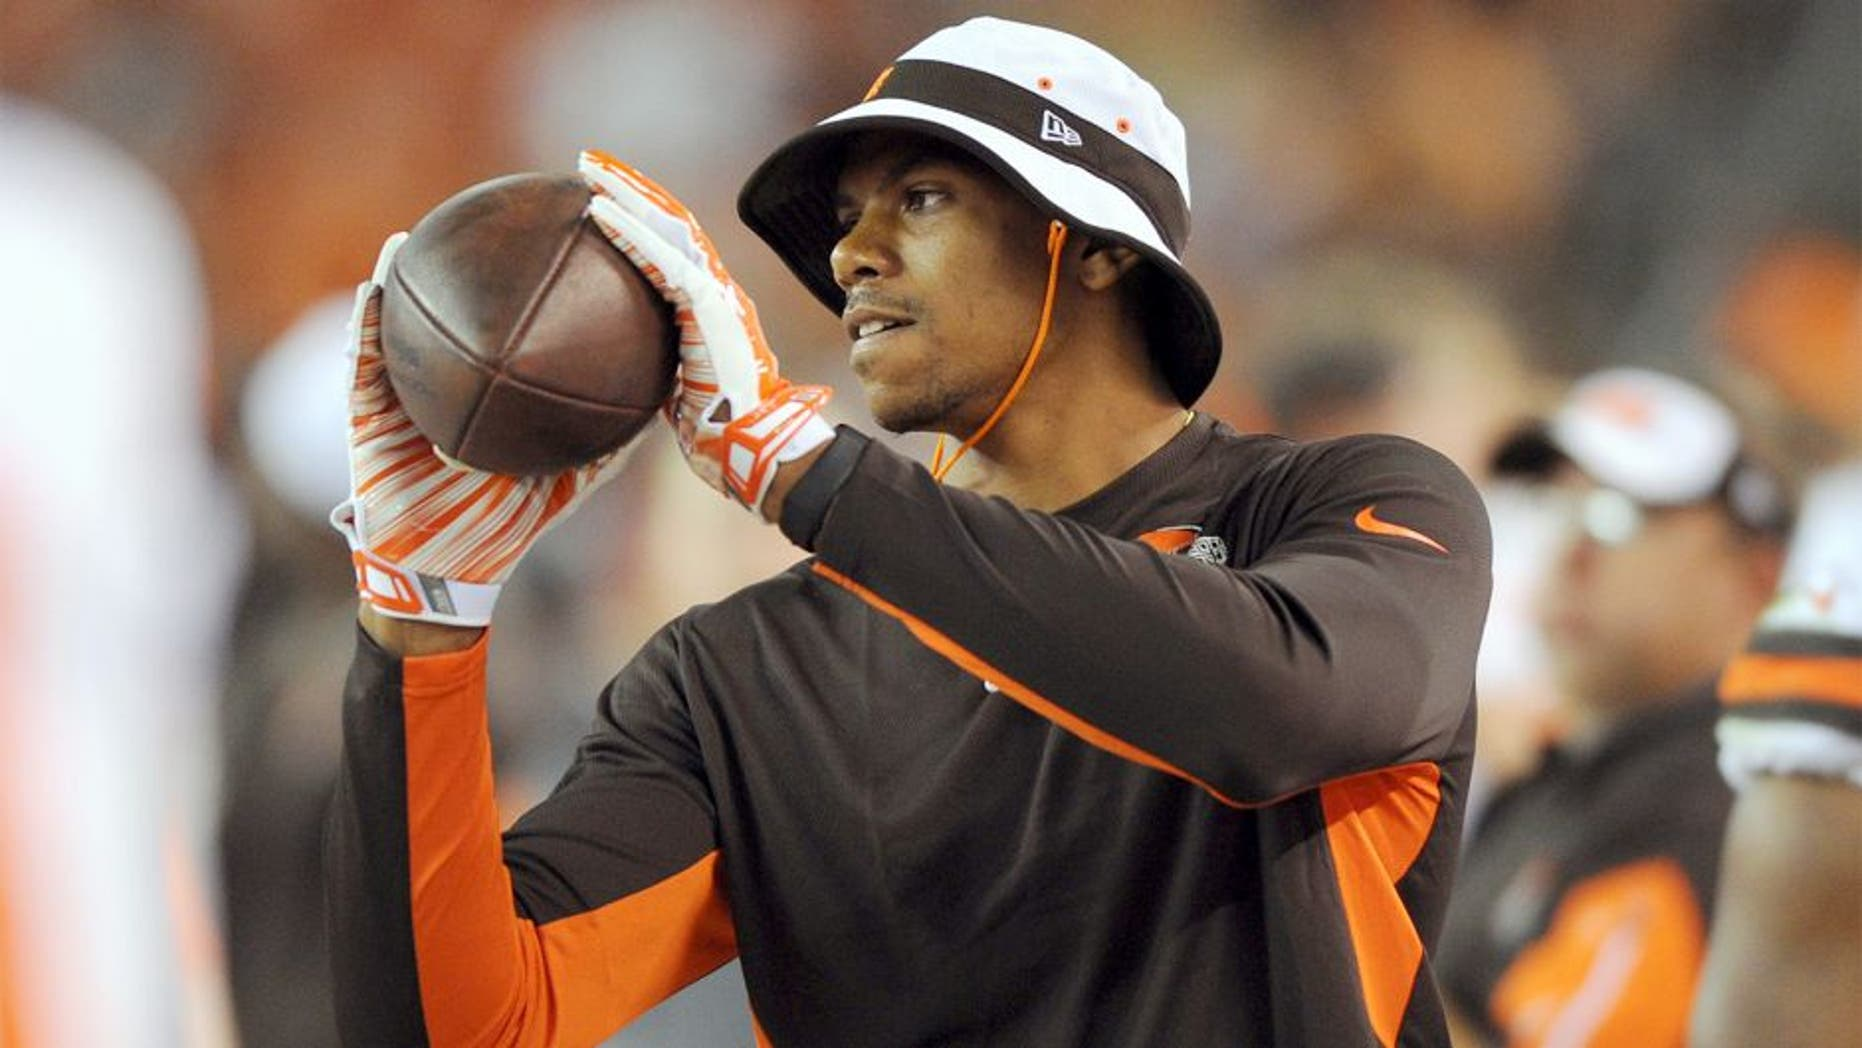 Aug 13, 2015; Cleveland, OH, USA; Cleveland Browns wide receiver Terrelle Pryor (87) plays catch on the sideline in a preseason NFL football game against the Washington Redskins at FirstEnergy Stadium. Mandatory Credit: Ken Blaze-USA TODAY Sports